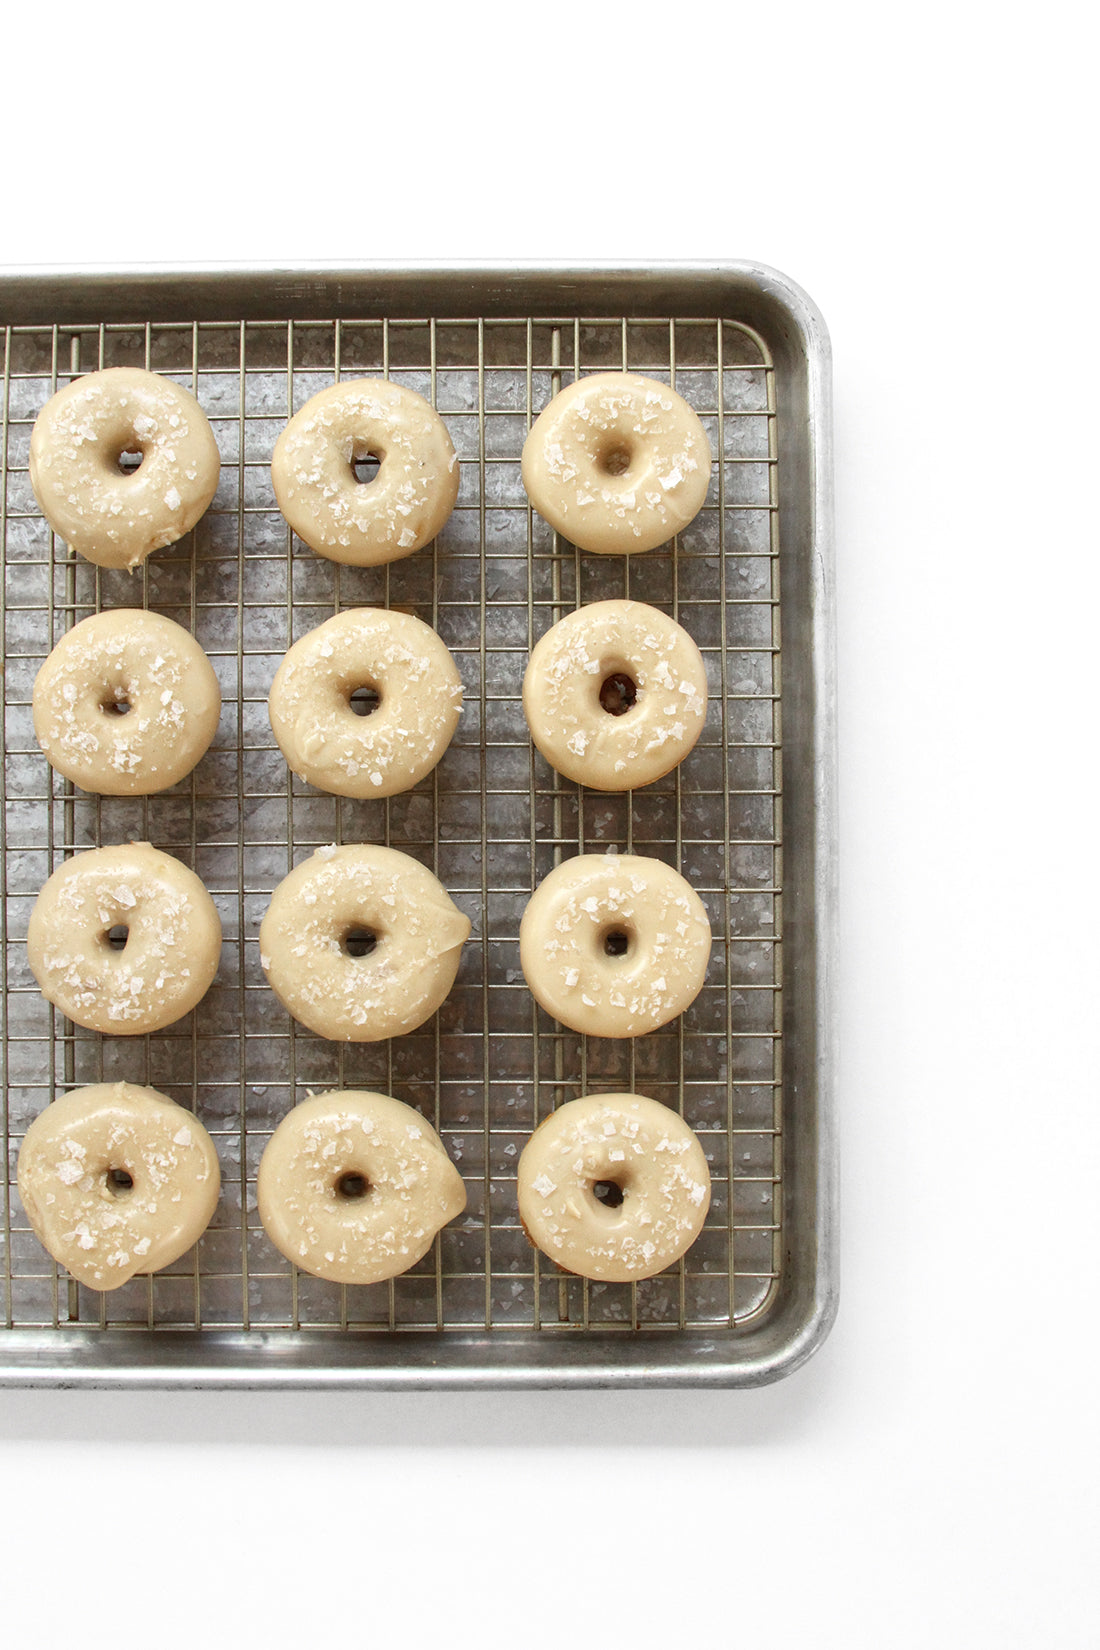 Image of 12 Miss Jones Baking Co Salted Maple Donuts on a baking rack